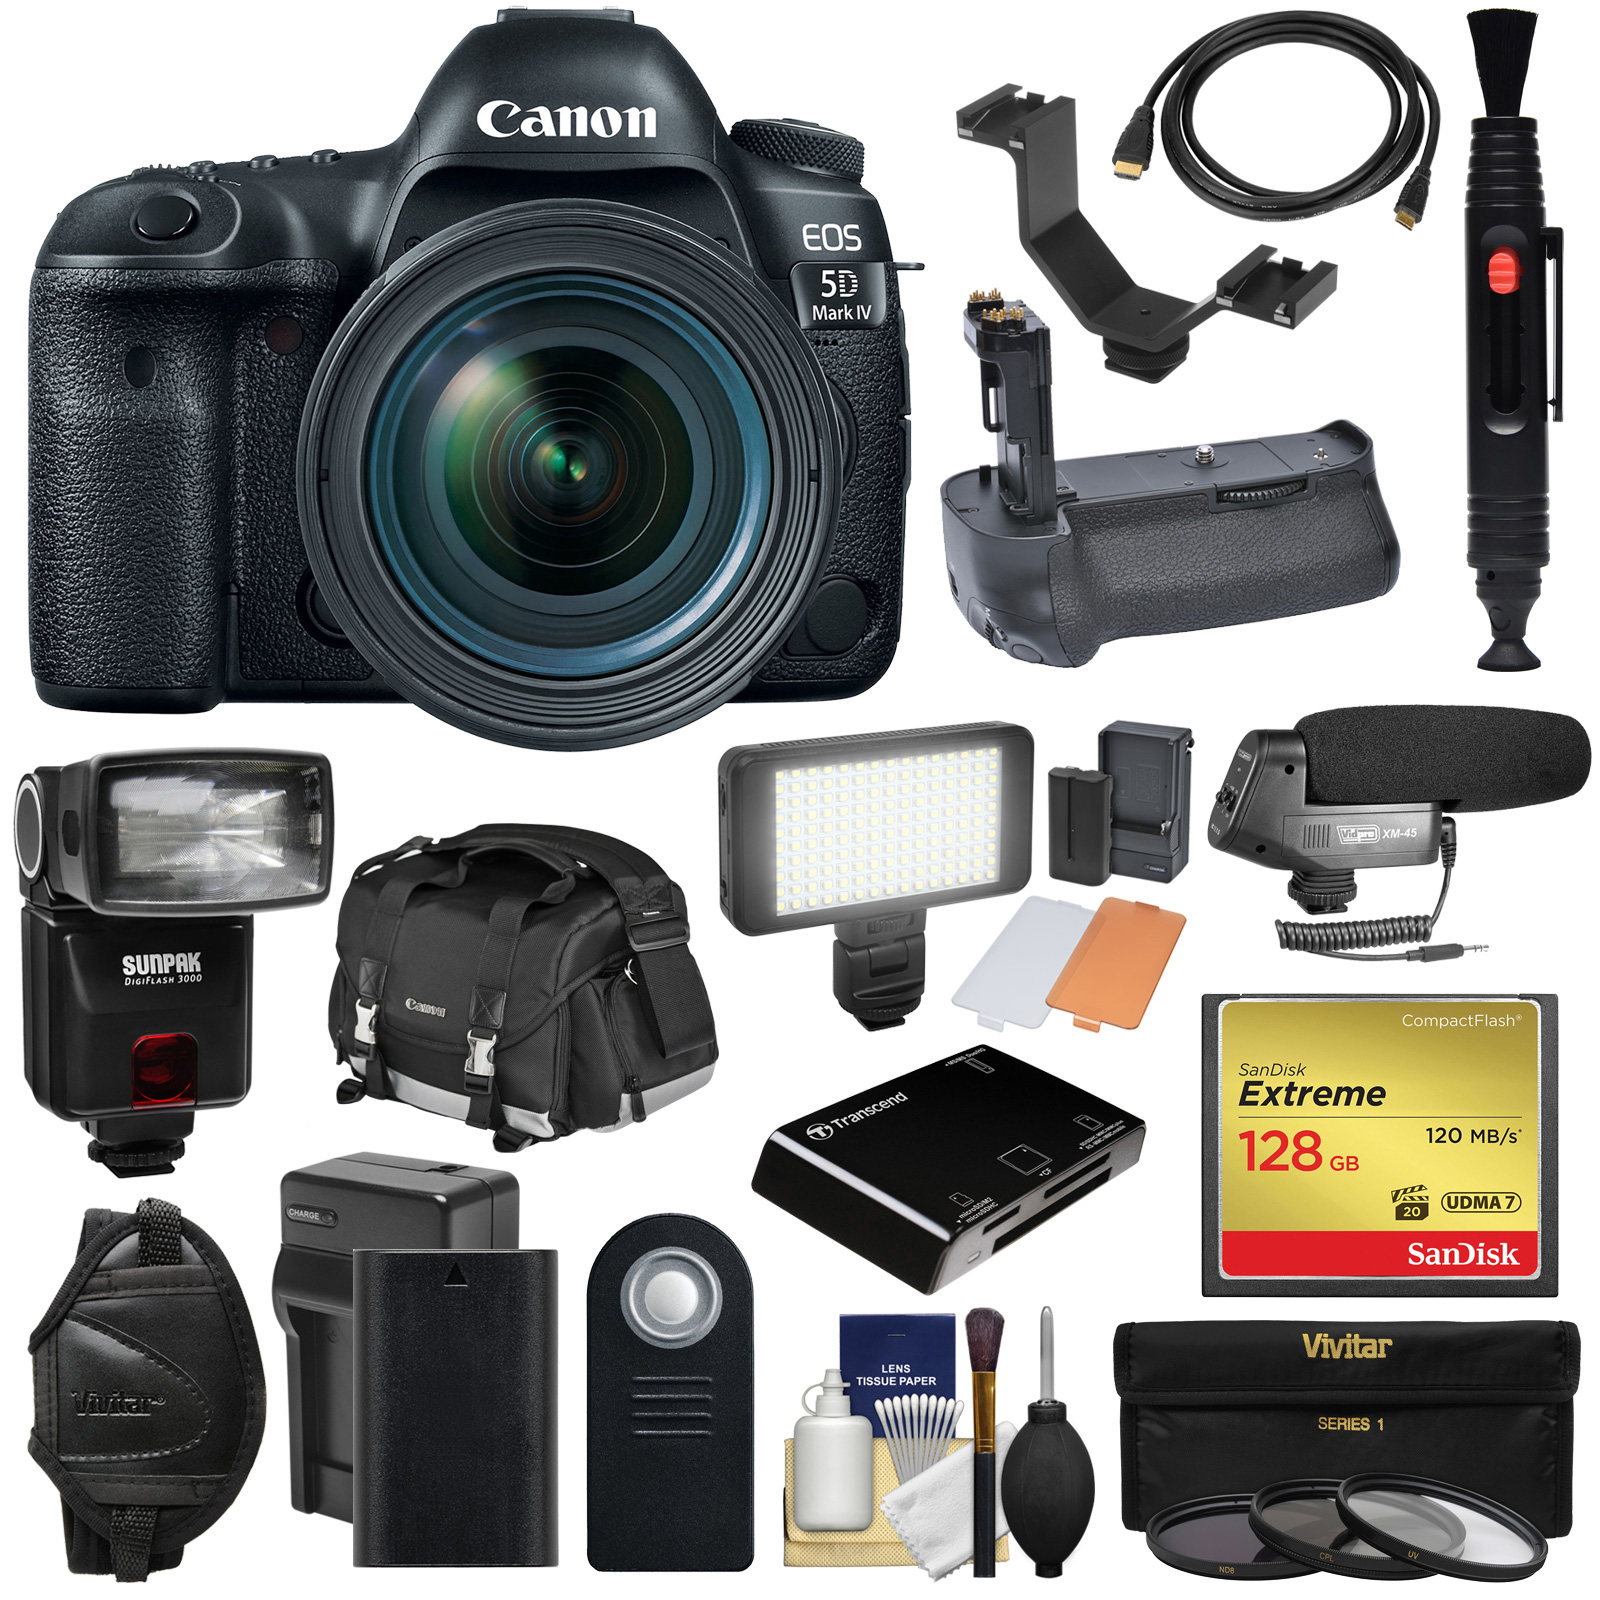 Canon EOS 5D Mark IV 4K Wi-Fi Digital SLR Camera & 24-70mm f 4L IS USM Lens + 128GB CF Card + Battery &... by Canon